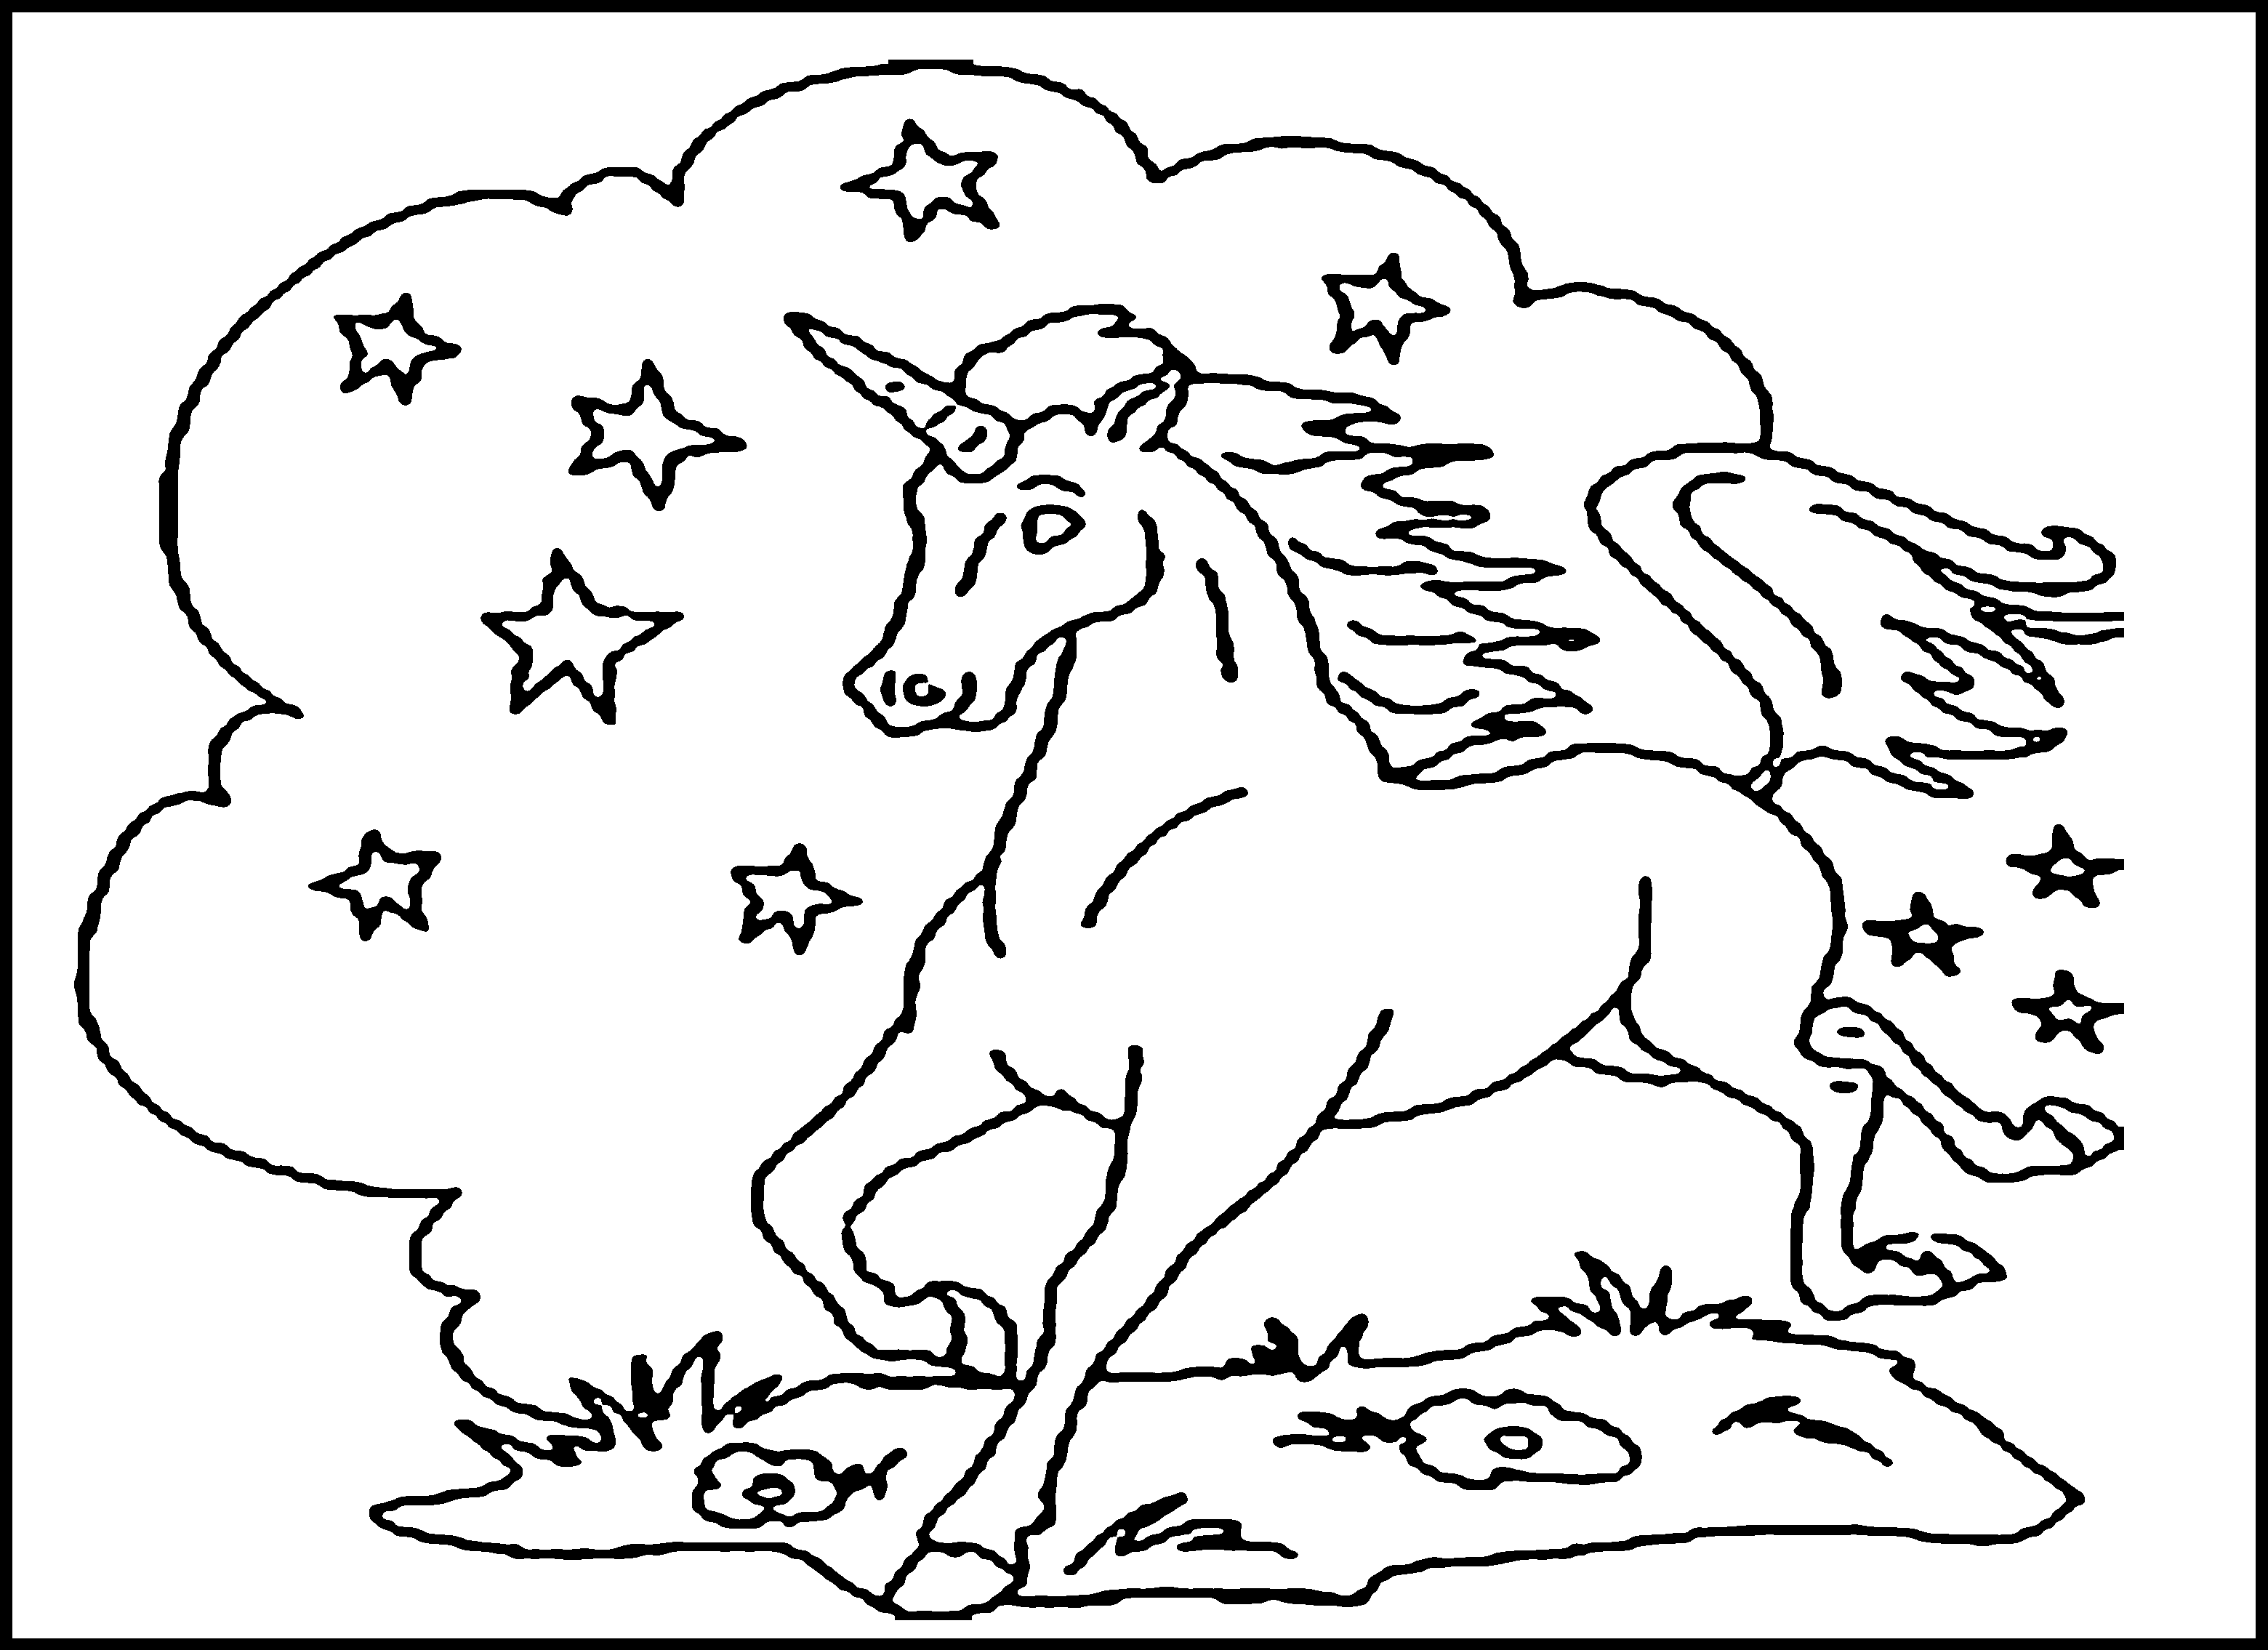 Unicorn coloring pages to print - Unicorn Printable Coloring Pages